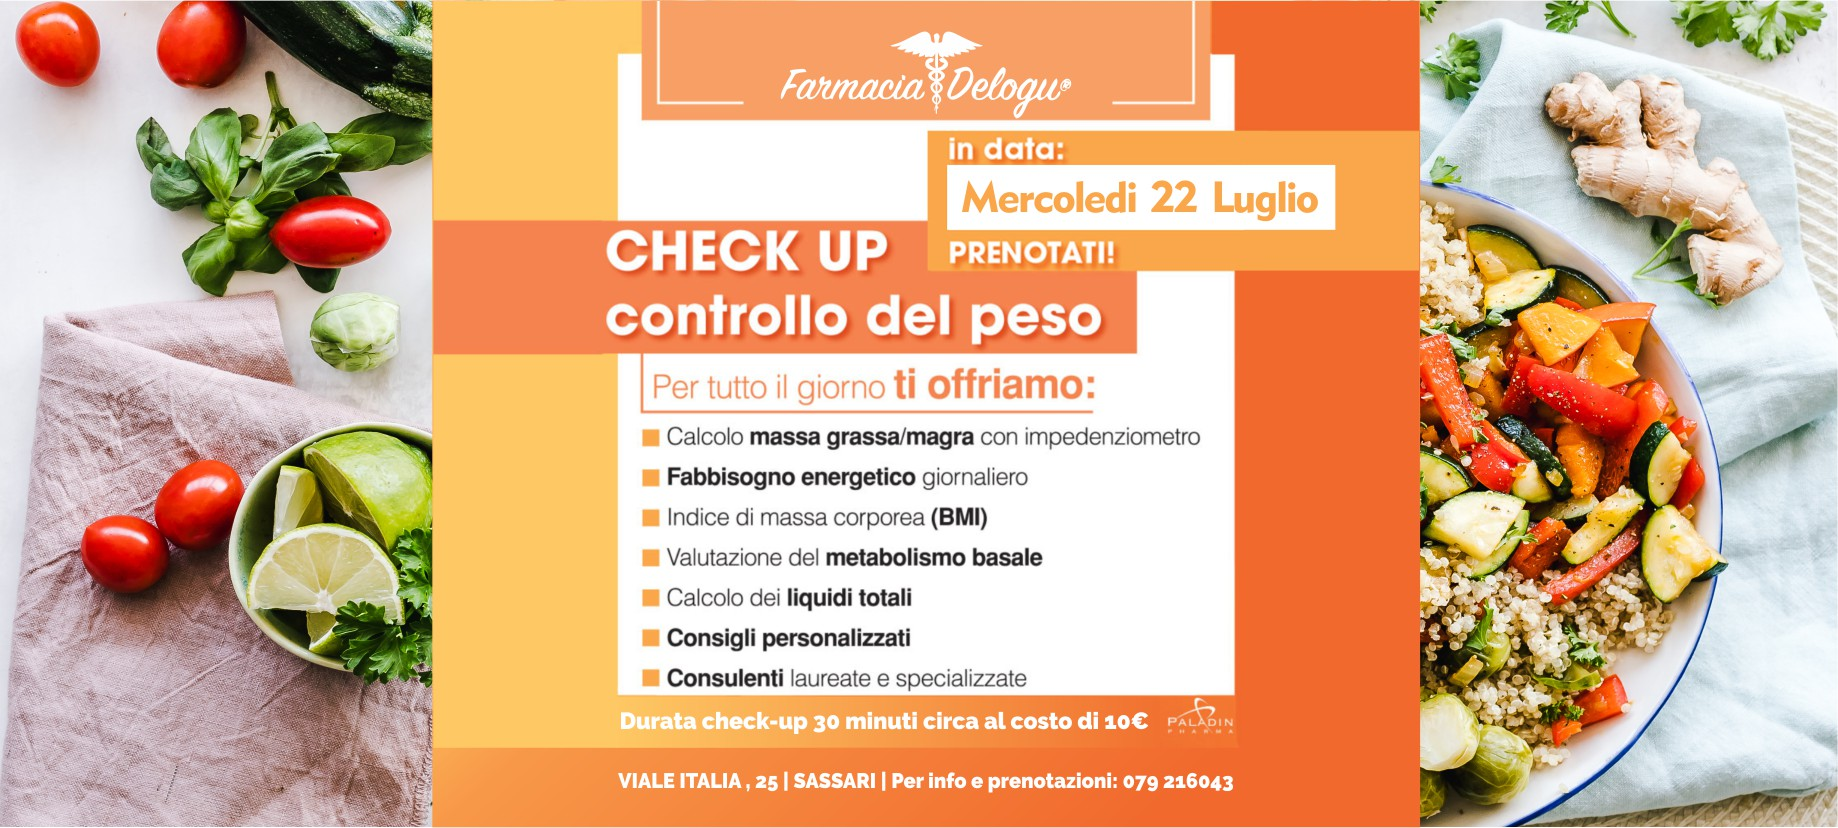 check-up-peso-farmacia-delogu